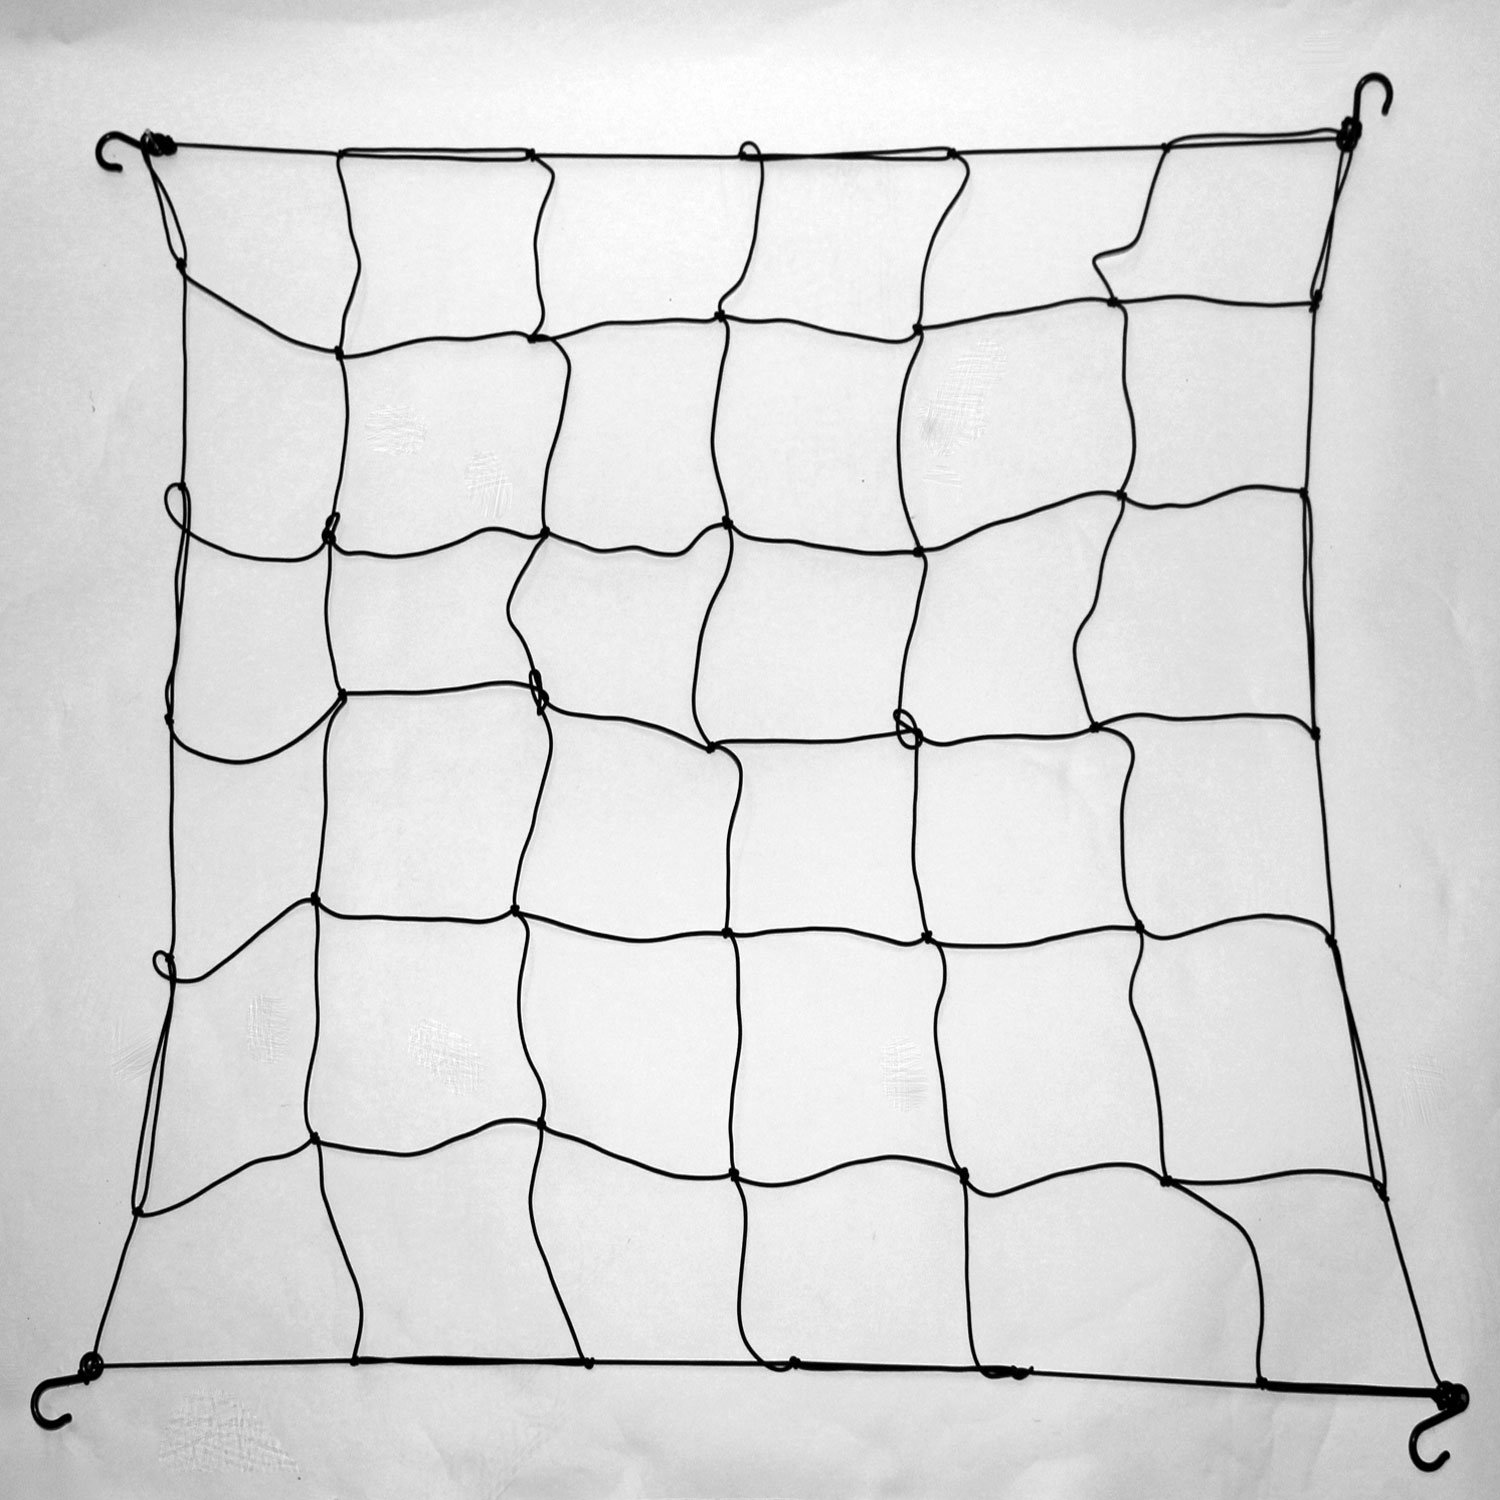 Black Orchid Hydrobox Scrog Net Plant Support for Hydroponic Grow Tent (60x60 Grow Tent) Blauberg UK